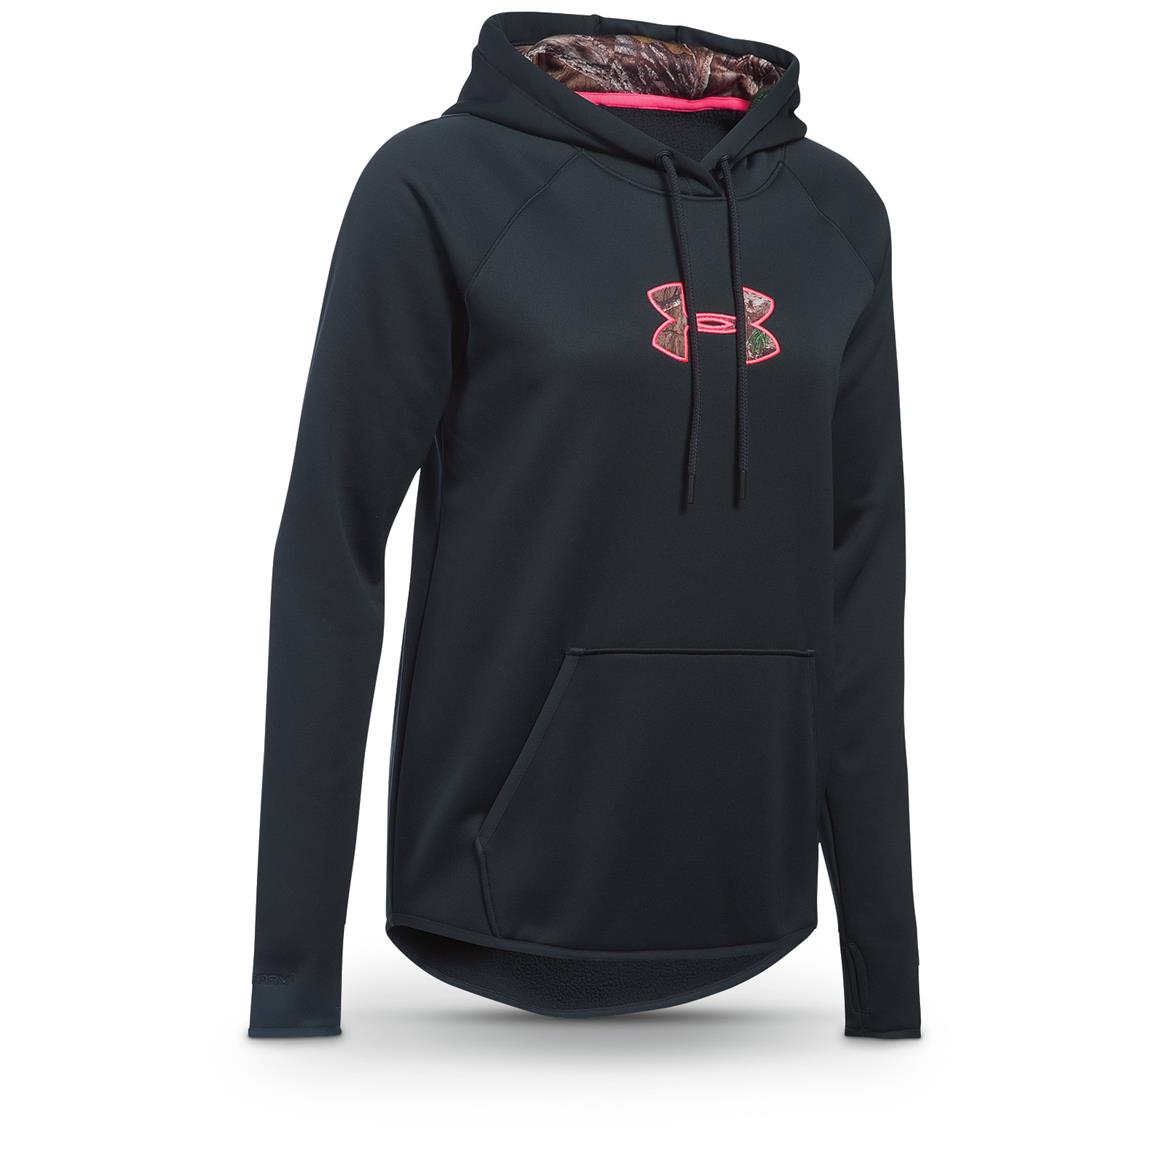 Under Armour Women's Icon Caliber Hoodie, Anthracite / Realtree